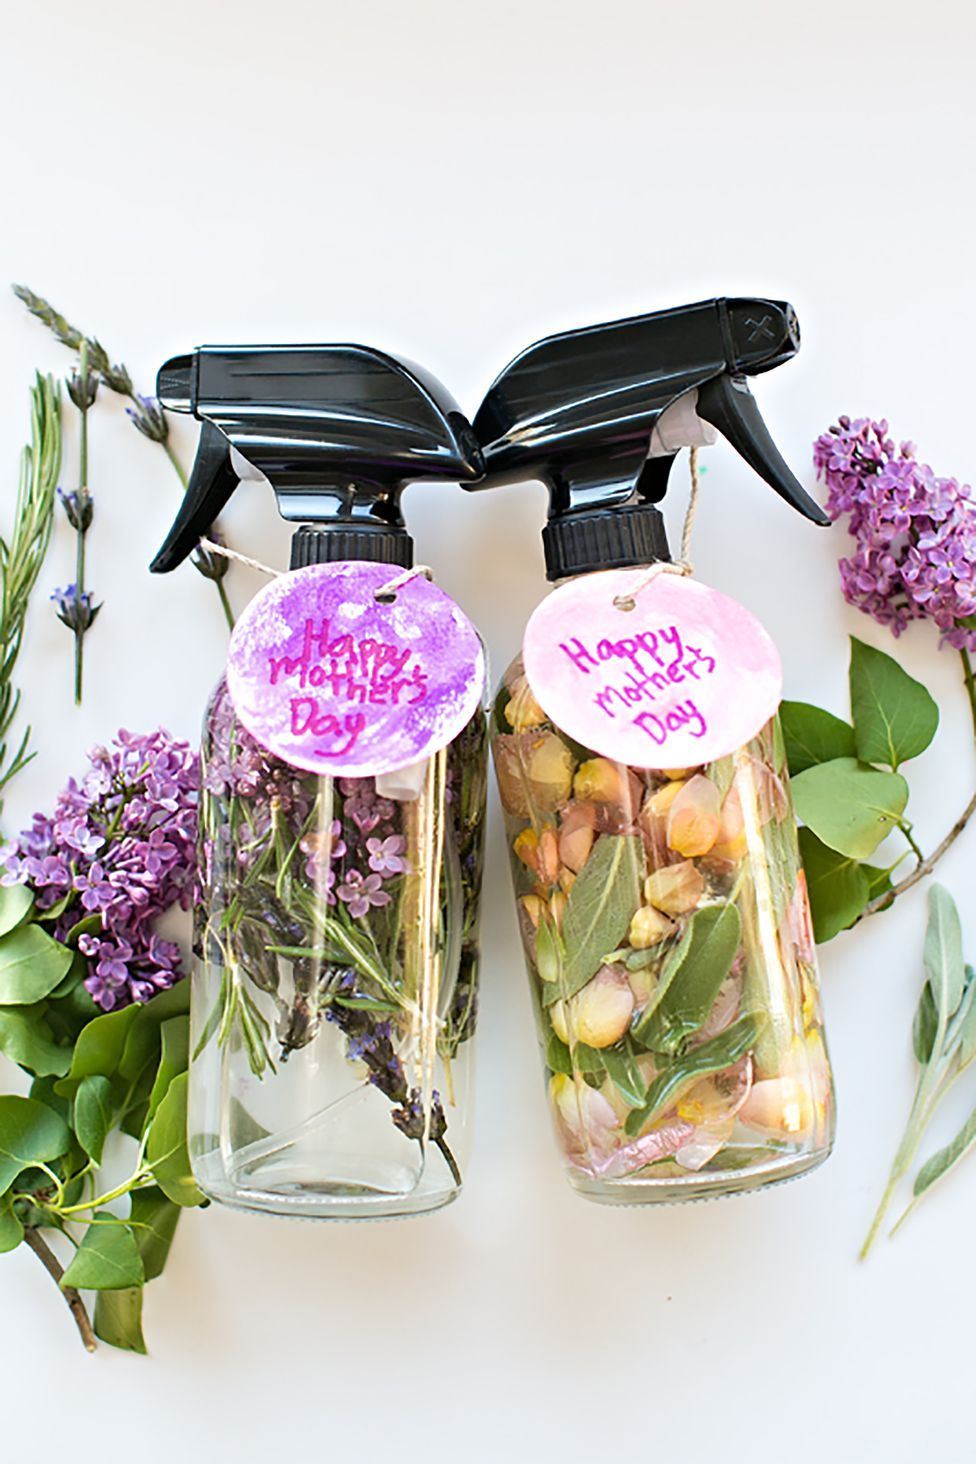 These Mother's Day Crafts Make for the Sweetest Gifts From